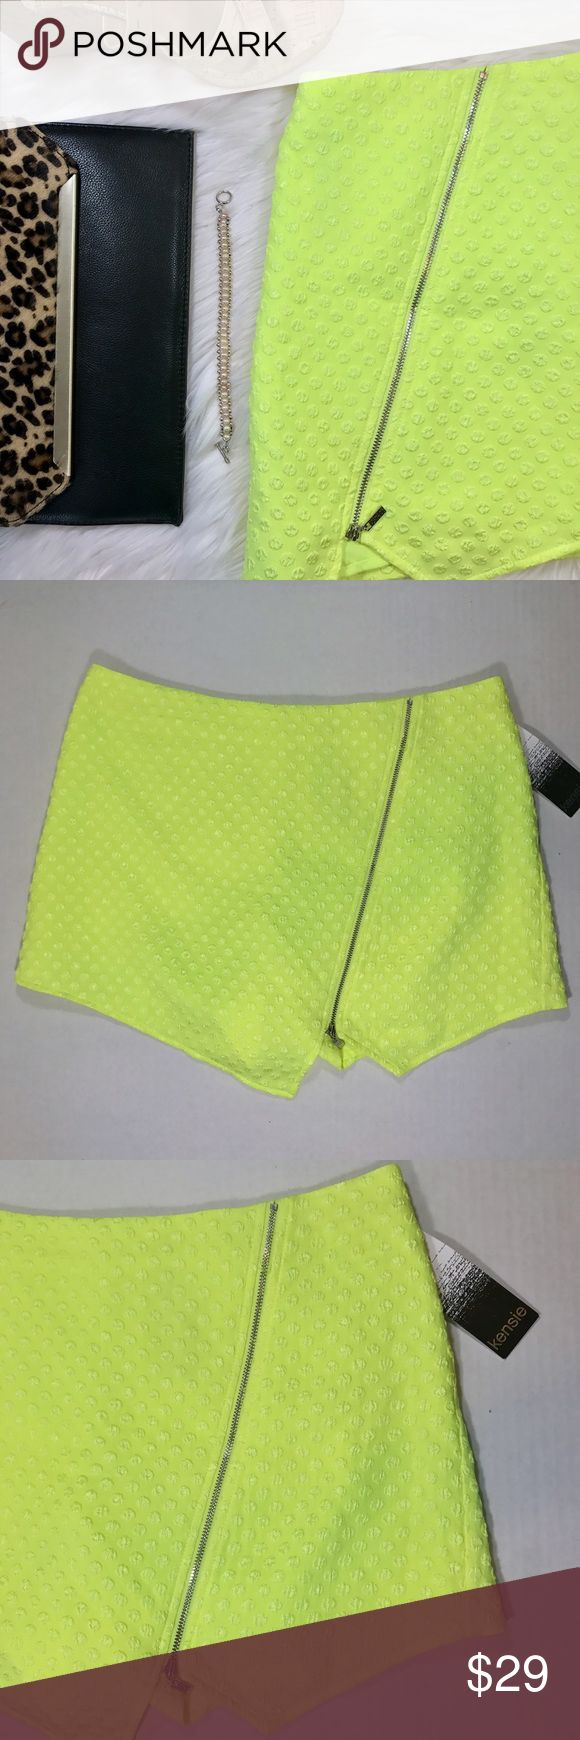 NWT Kensie zippered lime green skort NWT. Crazy cute Kensie skort in a gorgeous lime green color.   🛍Size: Medium 🛍 Features a front silver slanted decoration zipper and a functional back zipper for easy on and off. Kensie Shorts Skorts